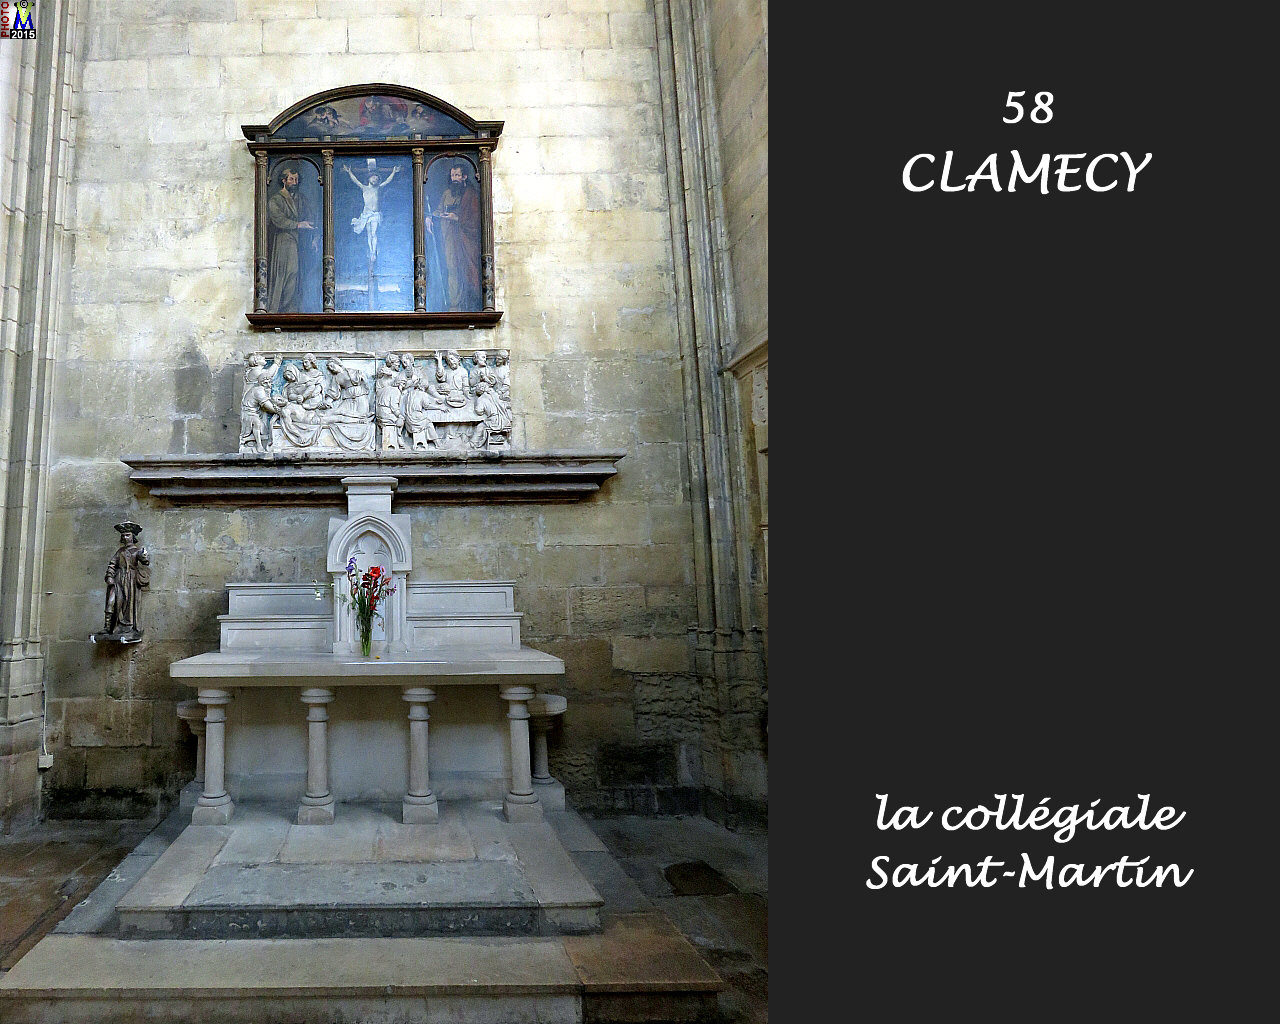 58CLAMECY-collegiale_222.jpg